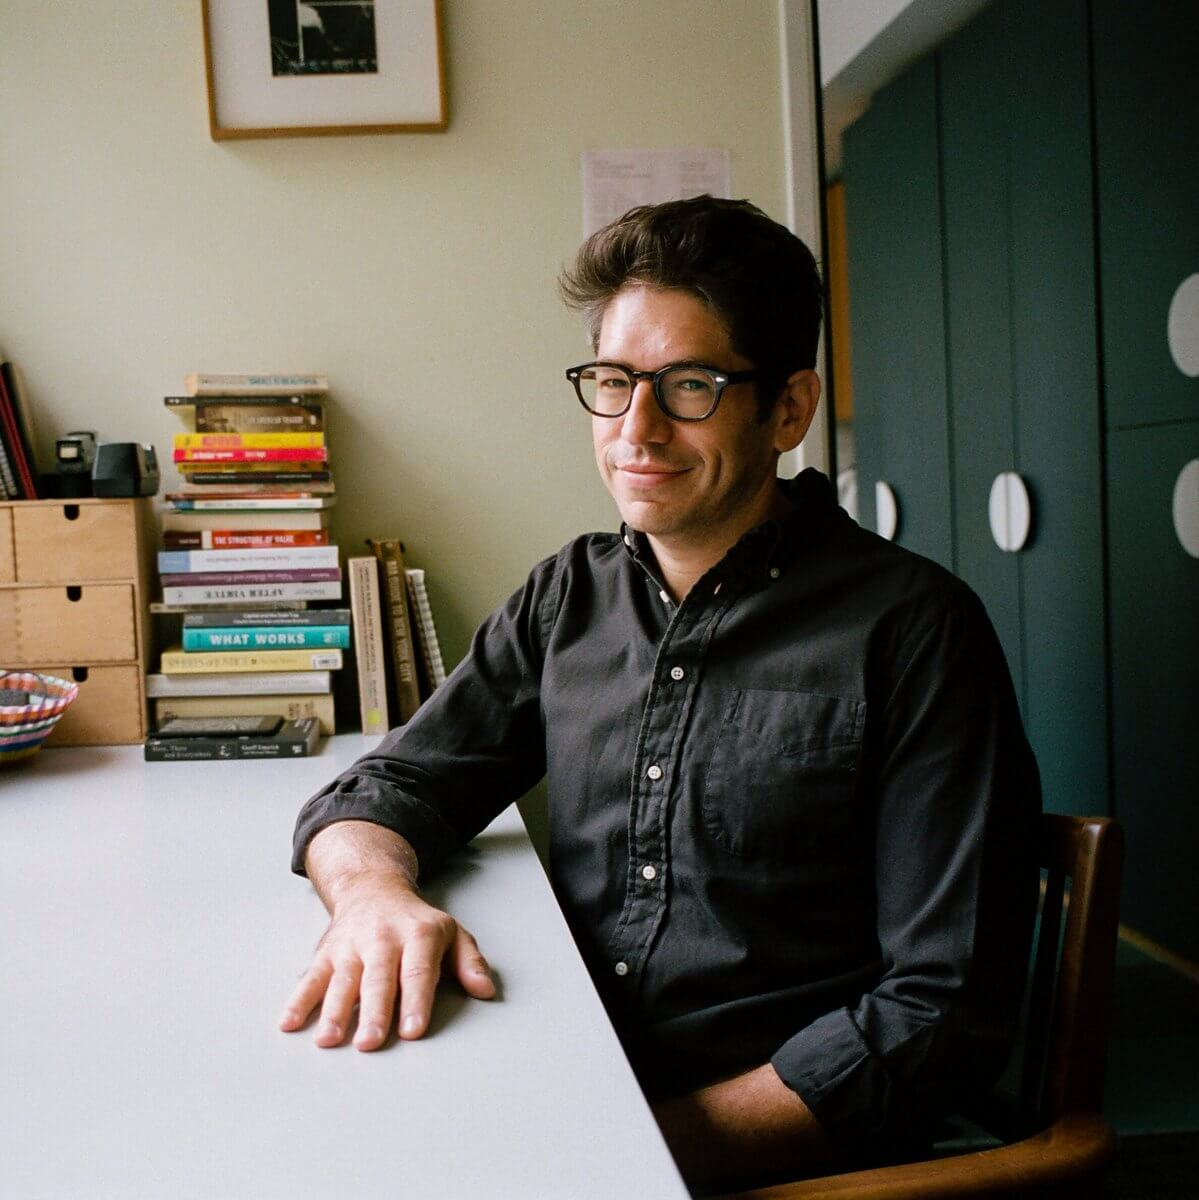 031 Yancey Strickler: Could this be our future?